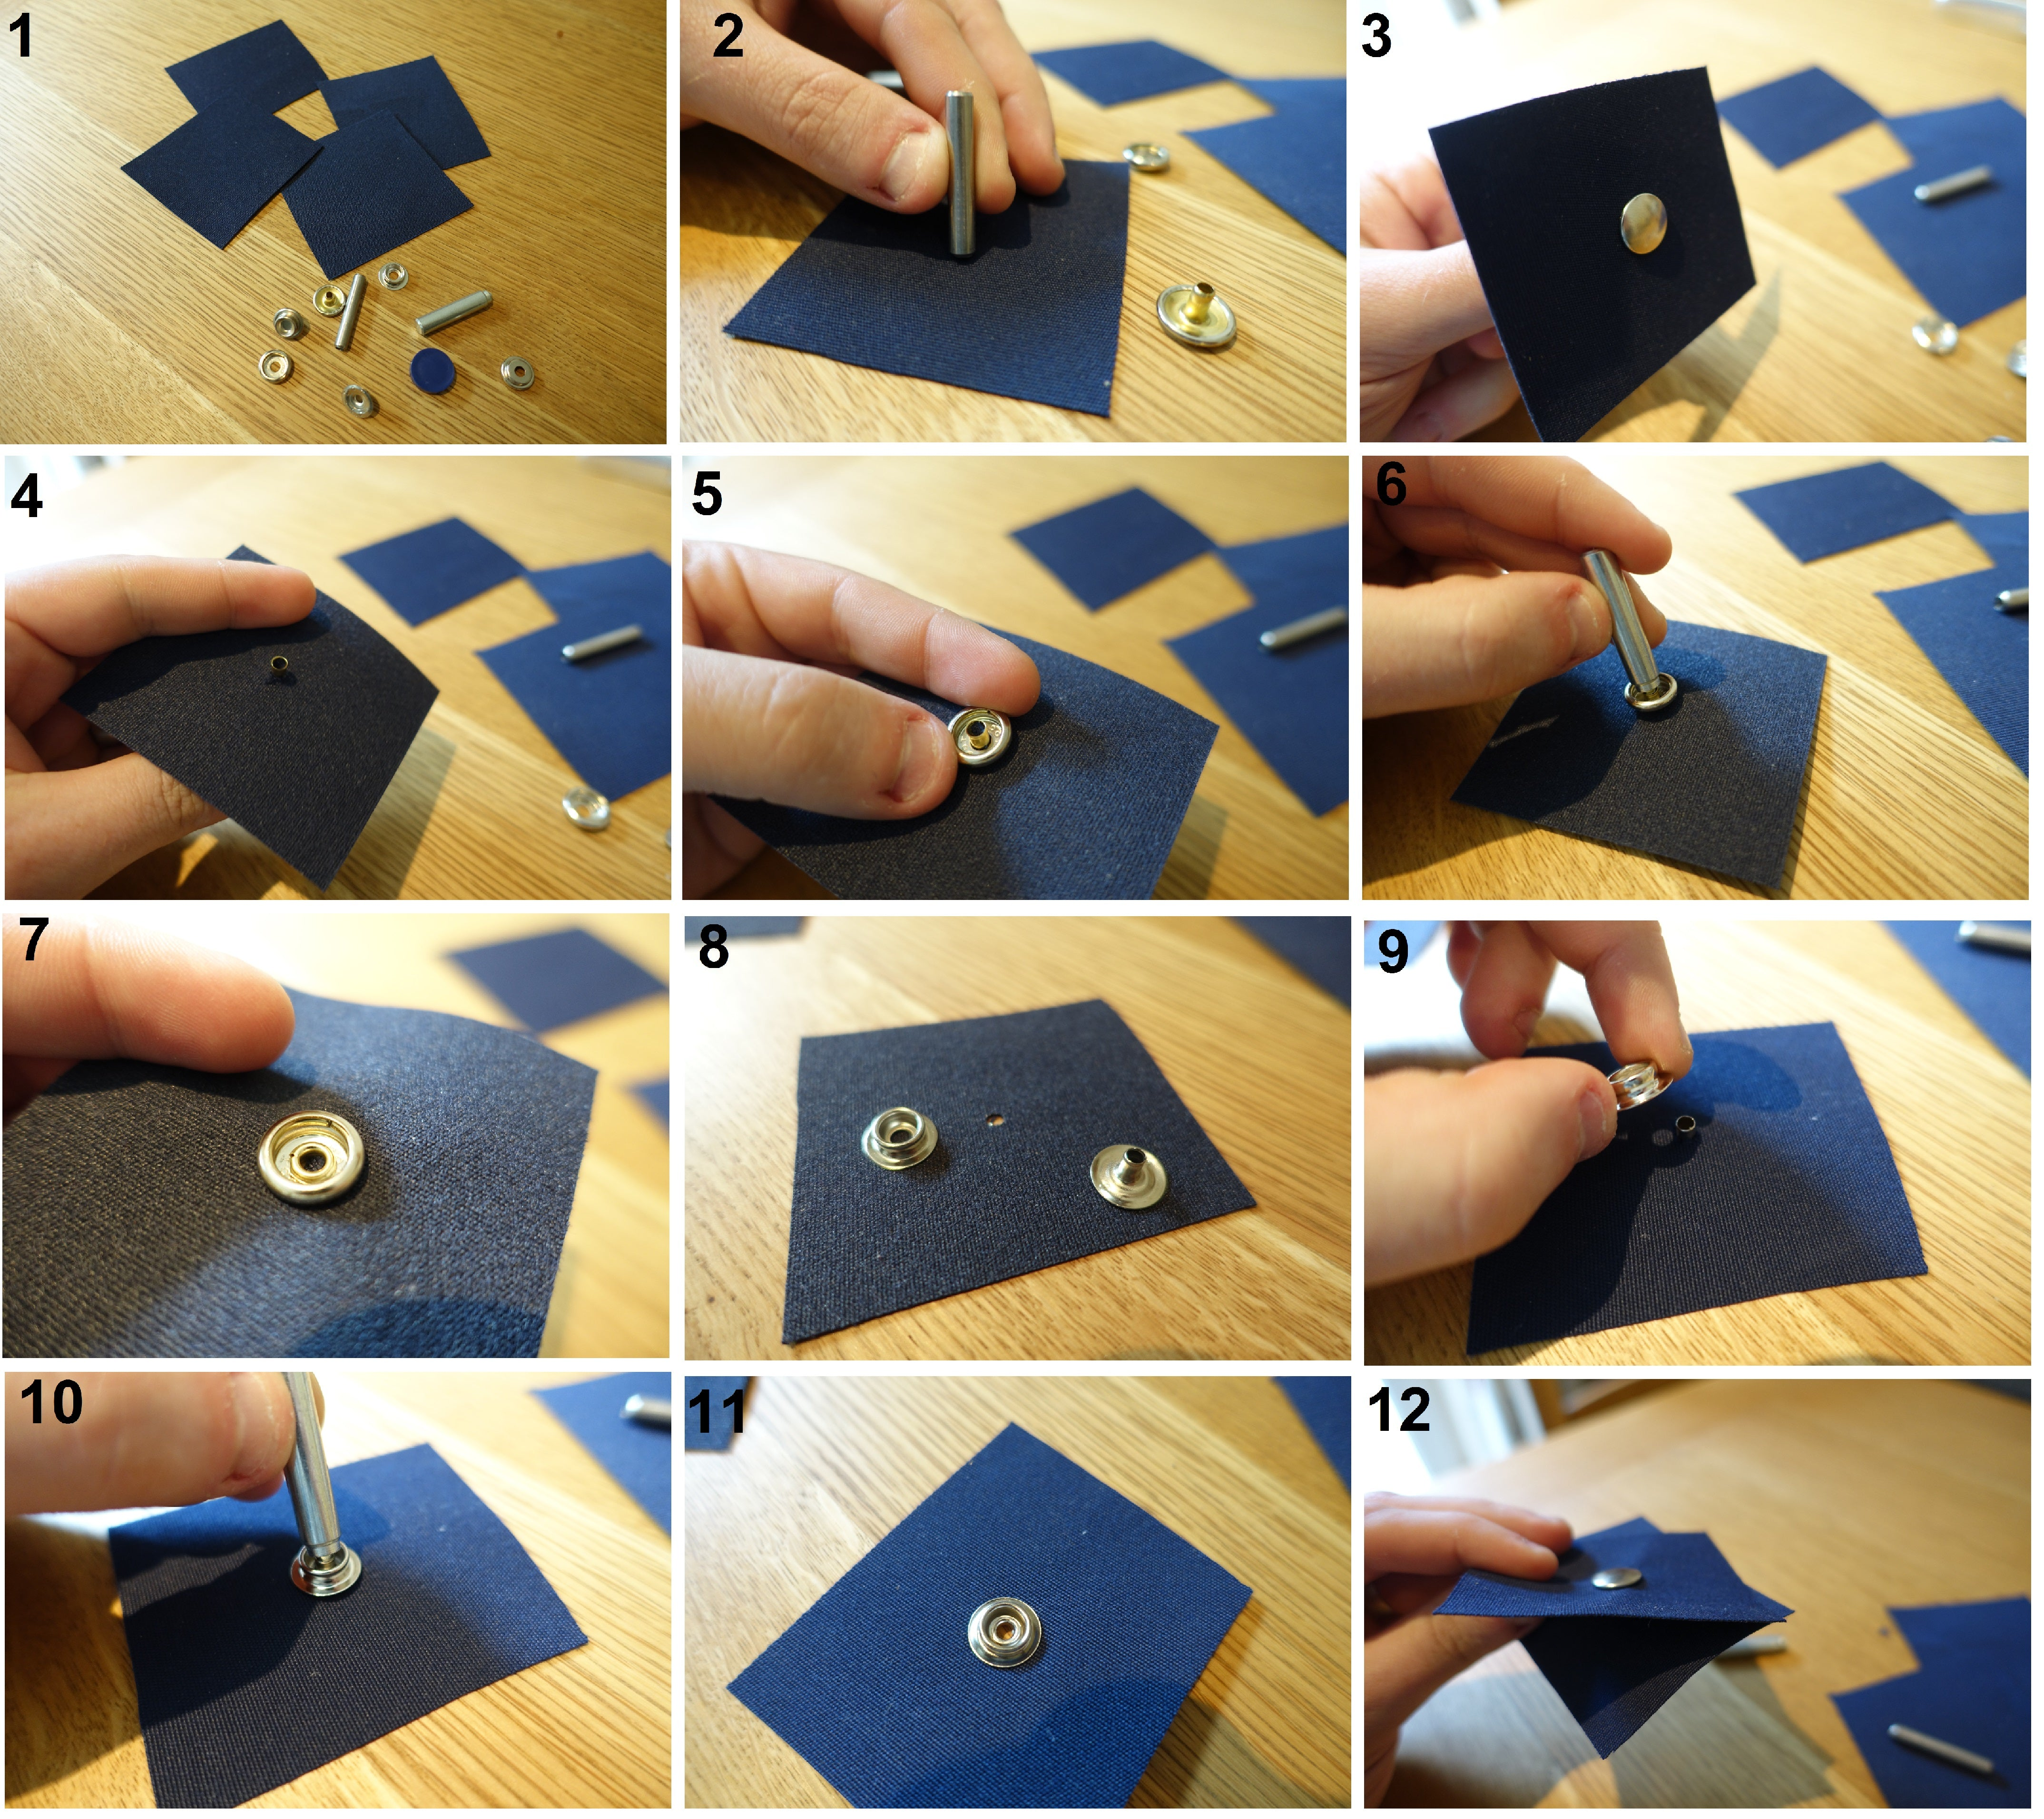 How to fit press snap fasteners and their difference uses